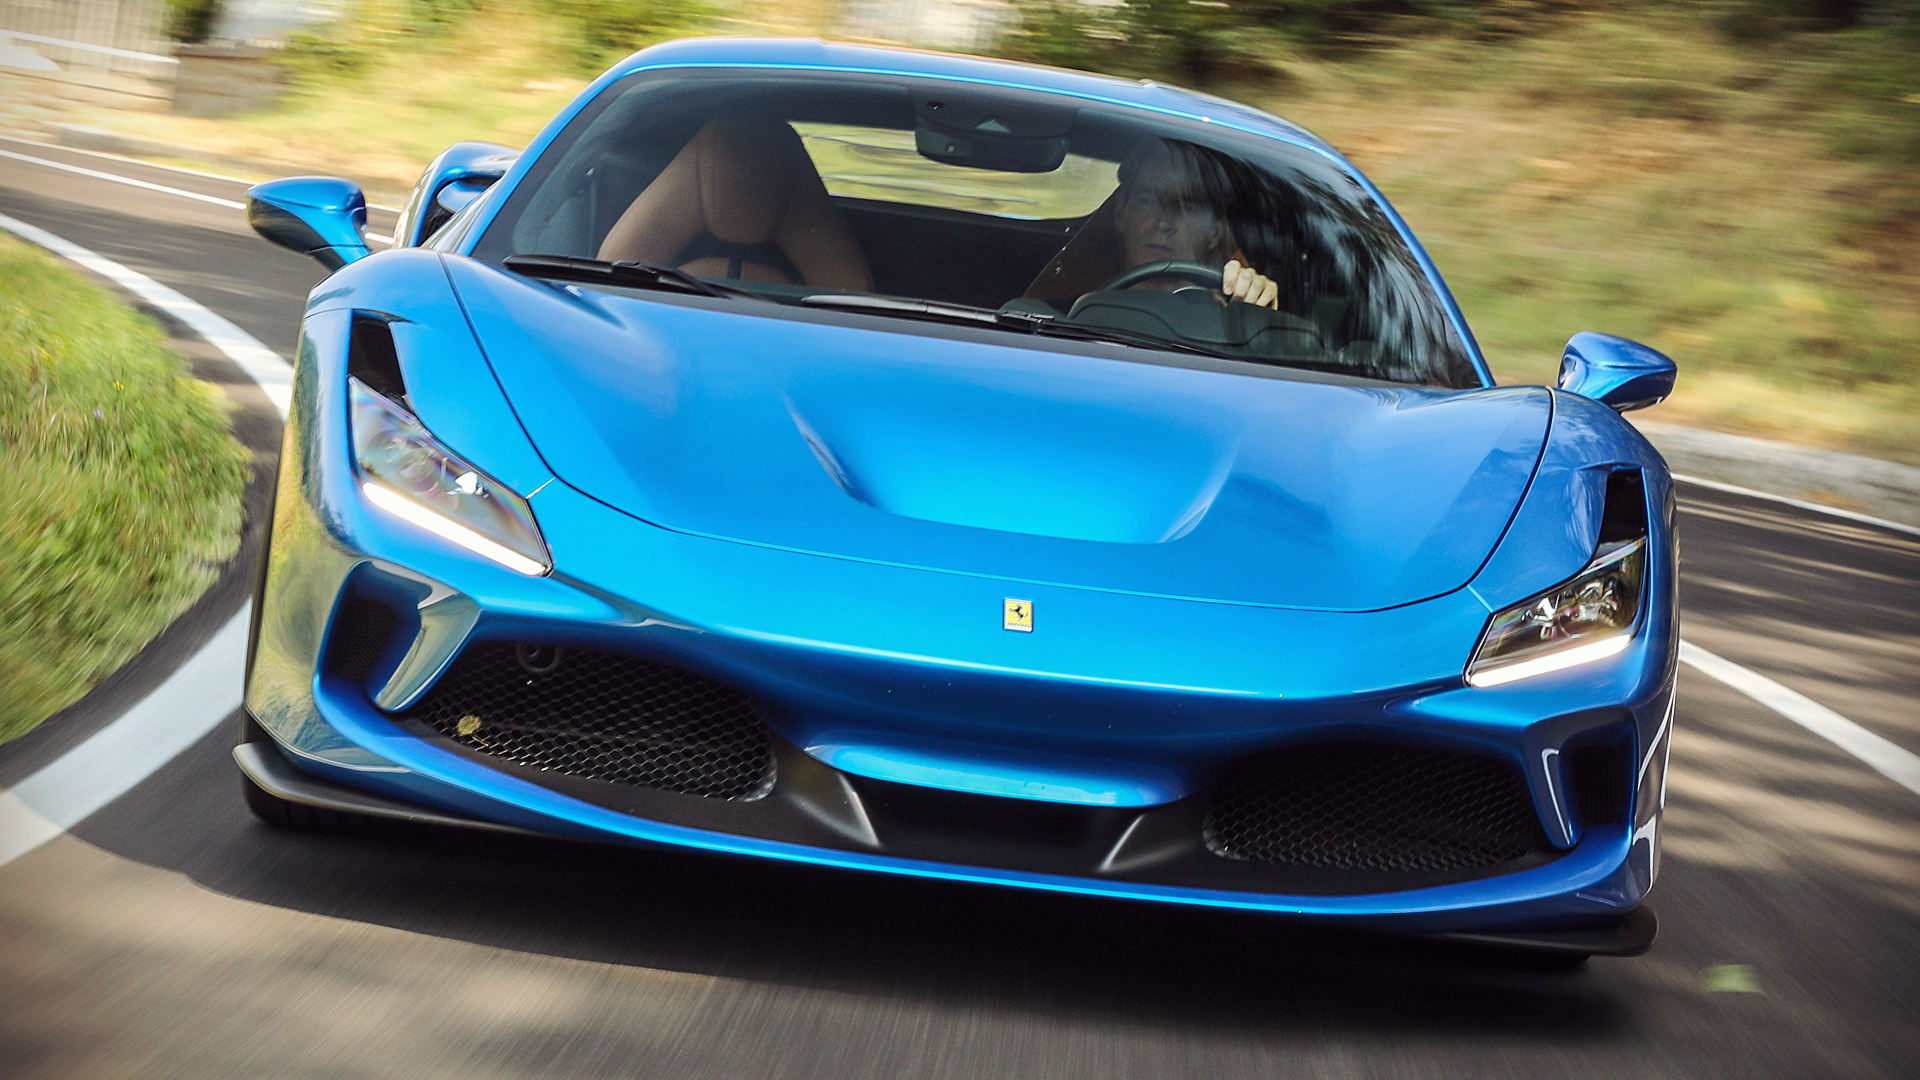 Ferrari F8 Tributo 2020 Blue Wallpaper